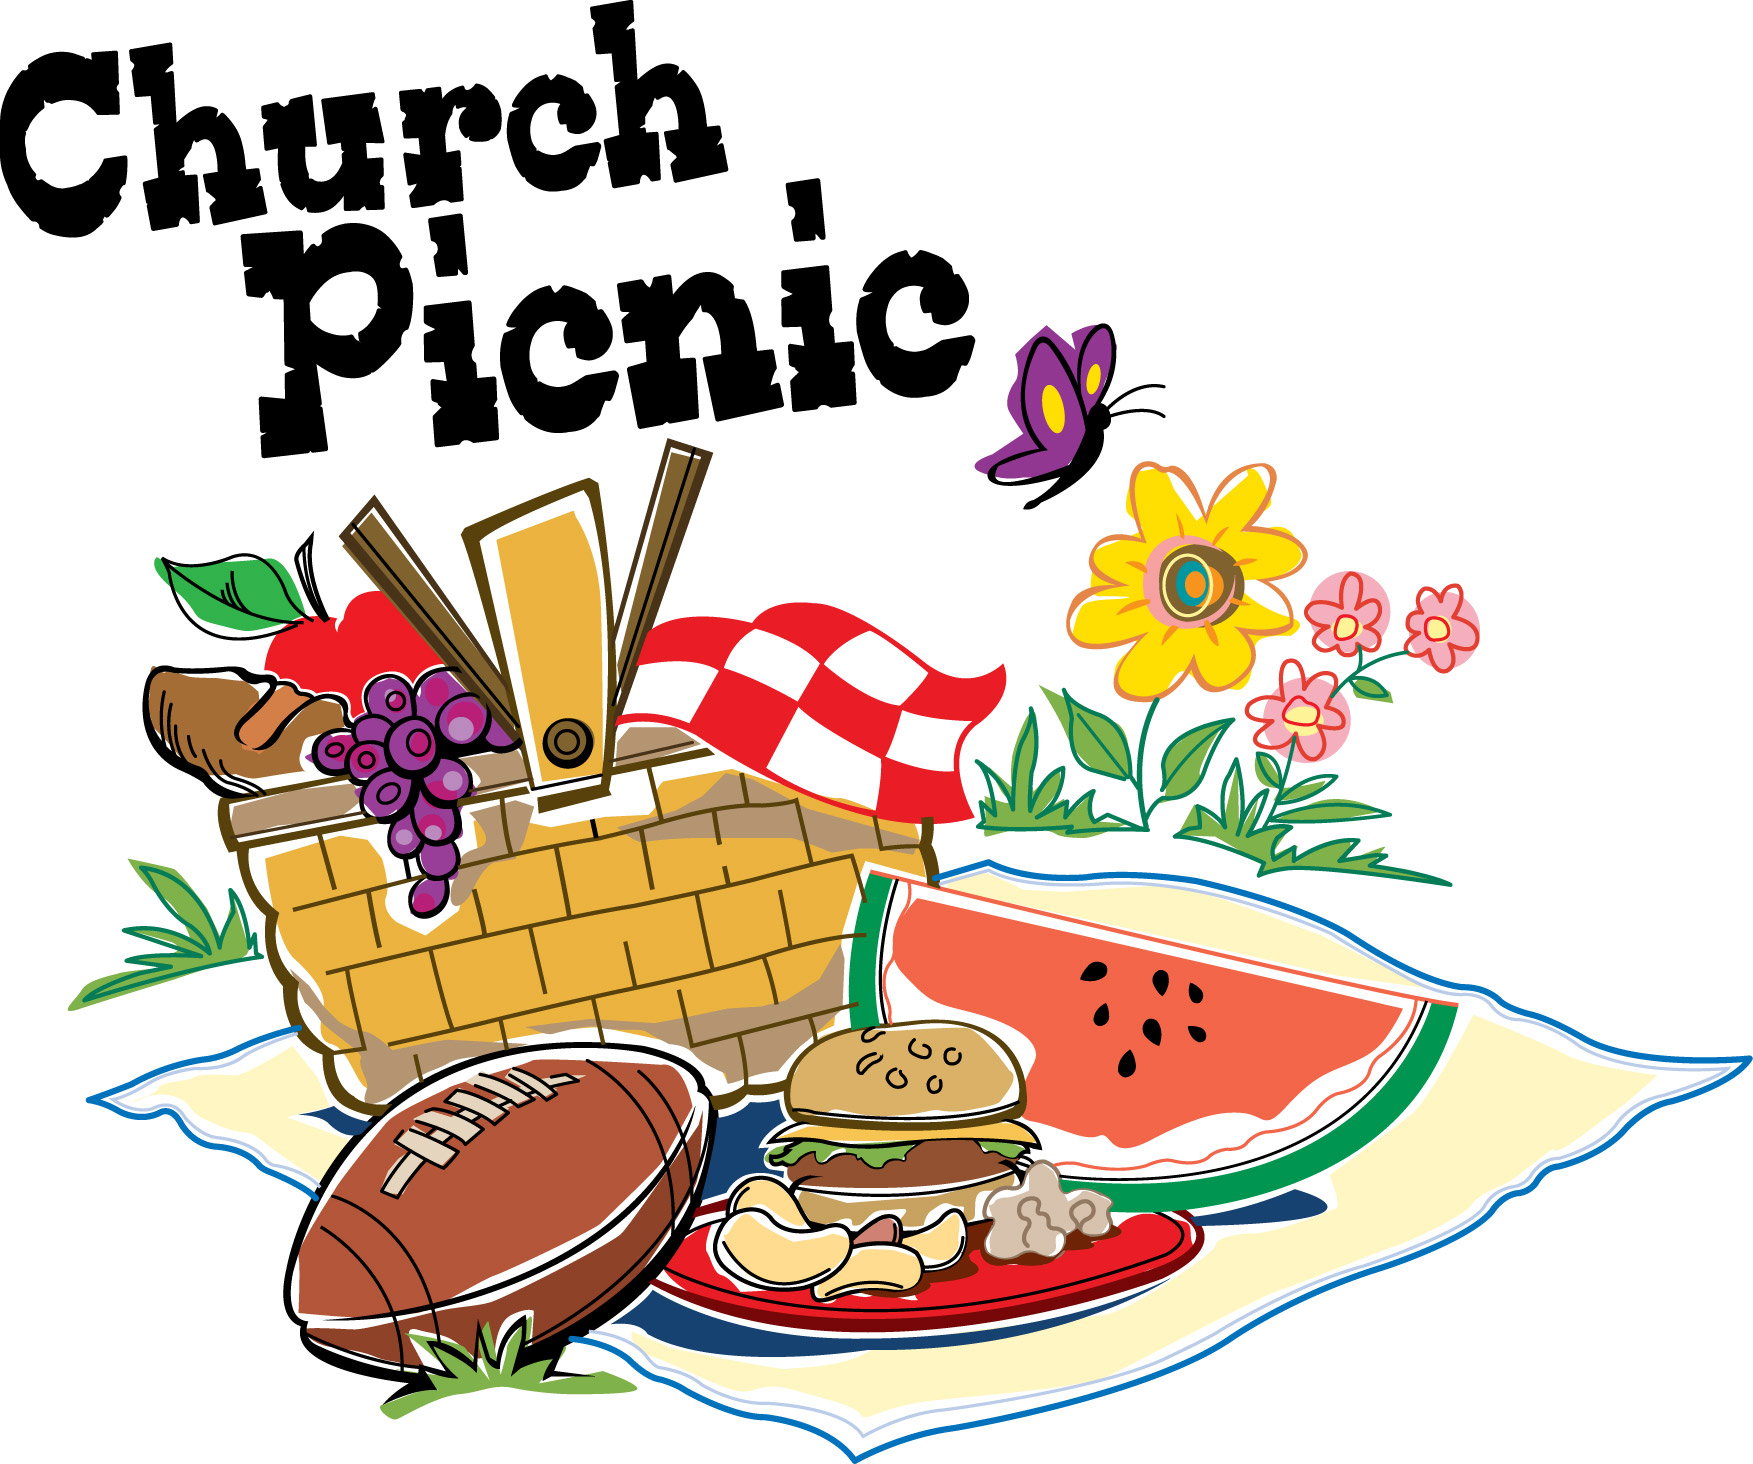 Sunday school closing program clipart black and white clip art freeuse download Best Church Picnic Clip Art #20482 - Clipartion.com clip art freeuse download